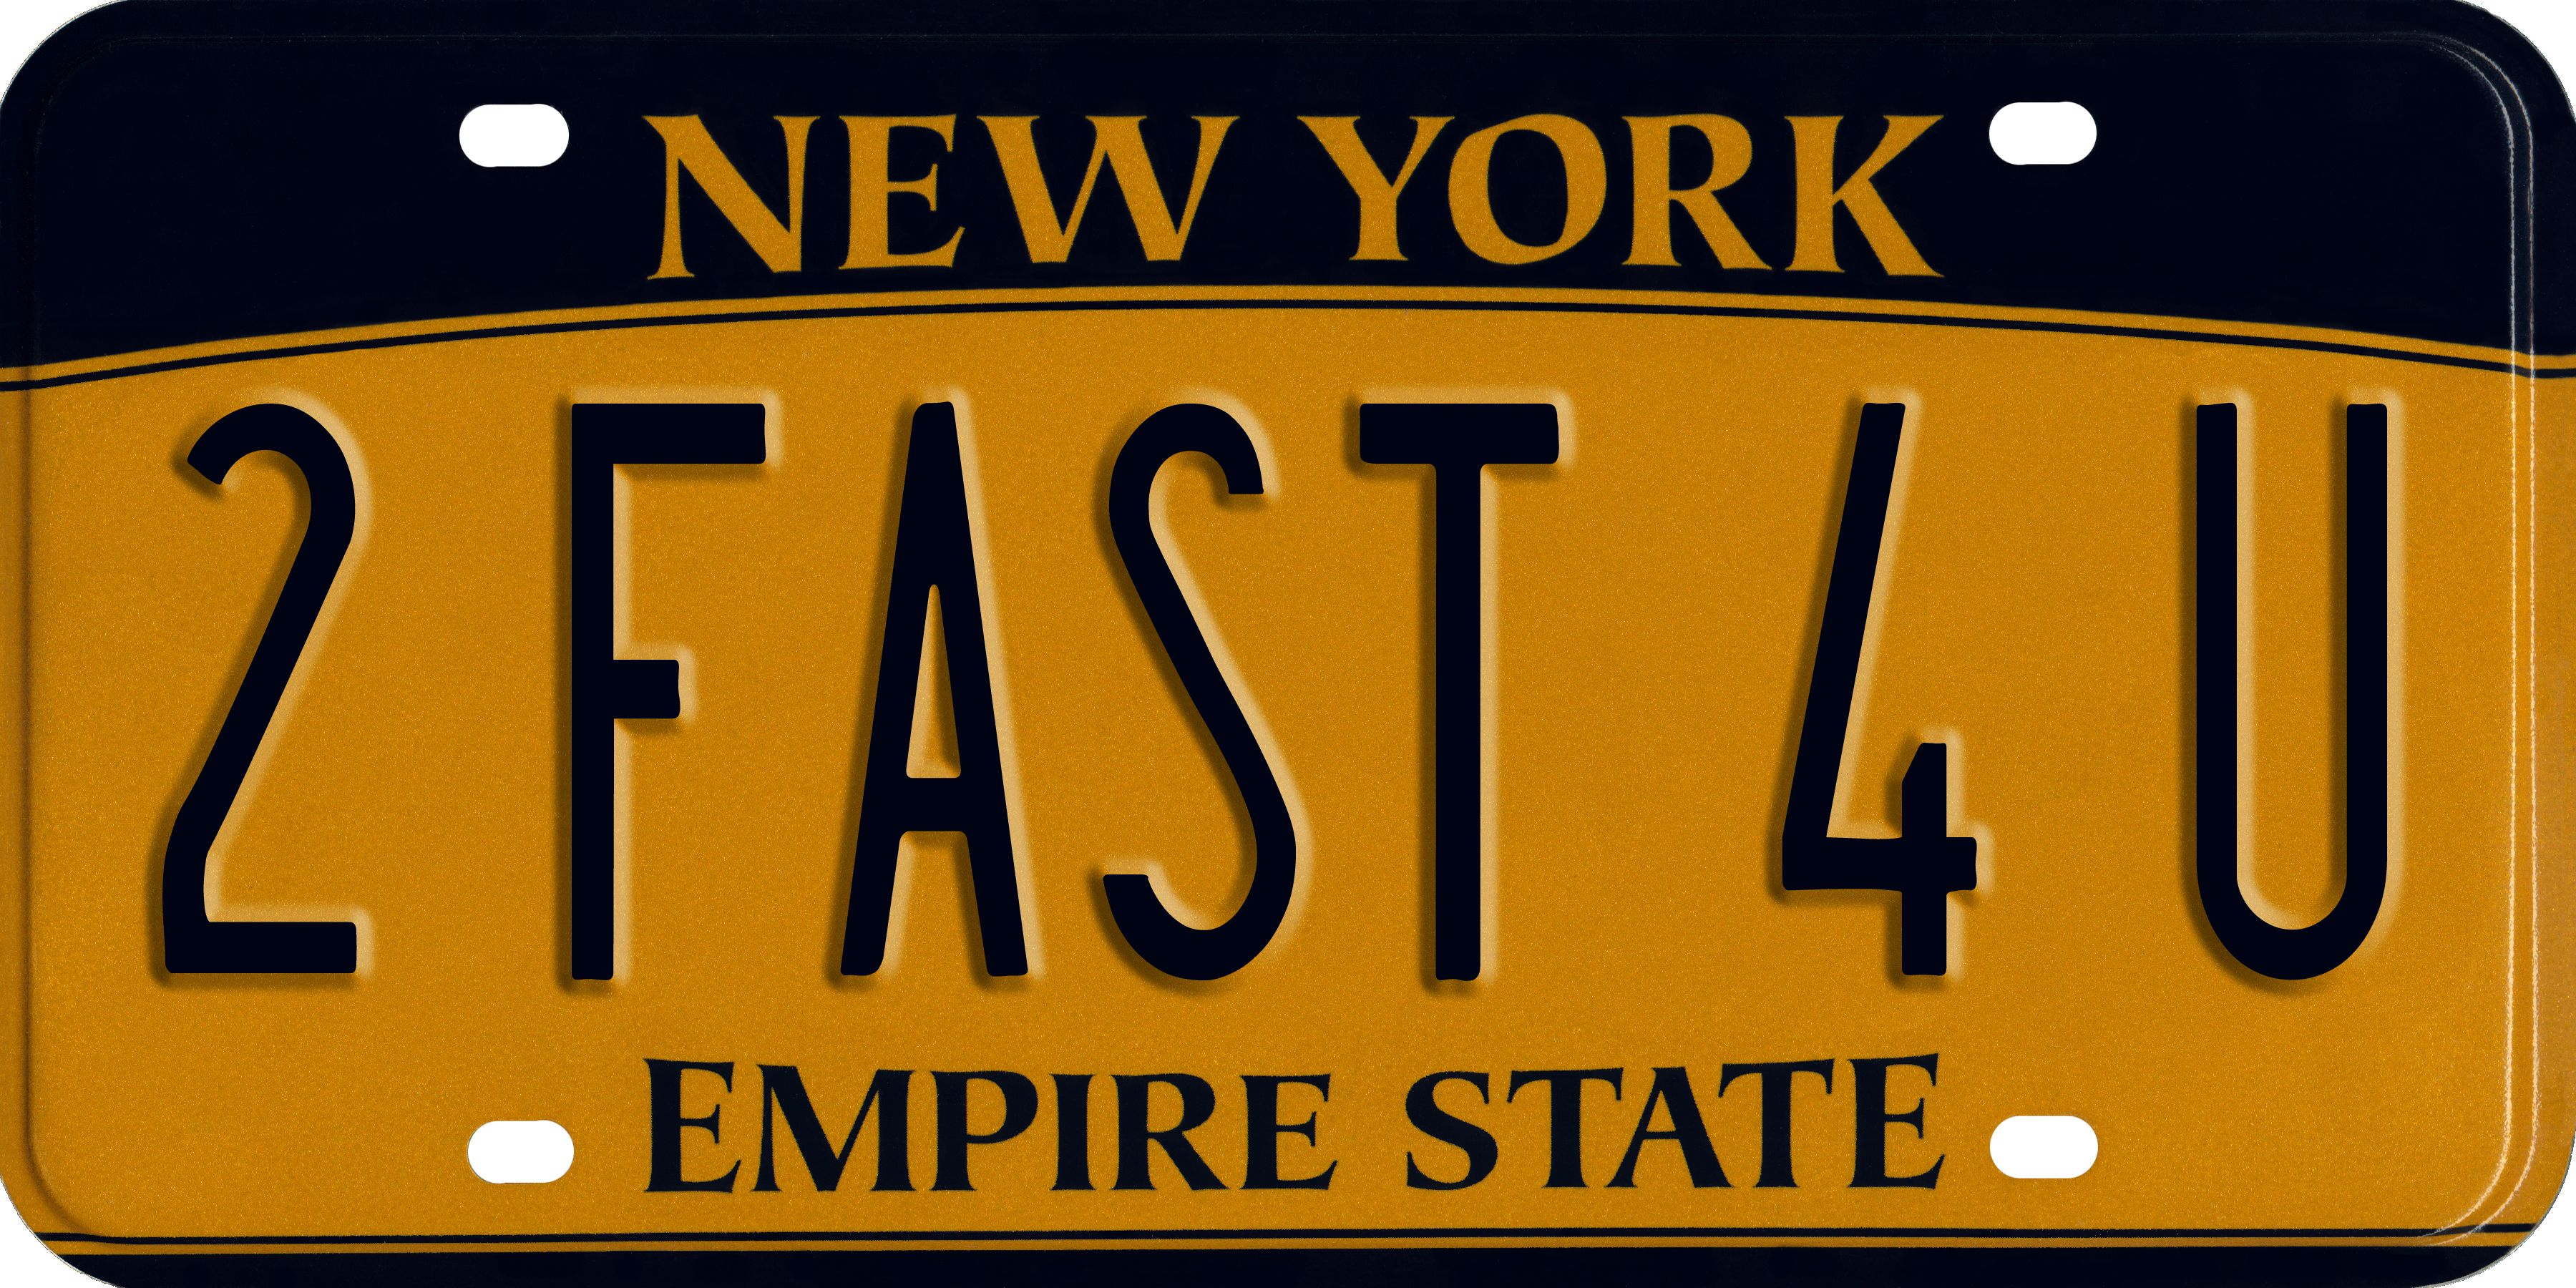 Decals/emblems/license Frames Personalized Custom New York State License Plate Any Name Novelty Auto Car Tag